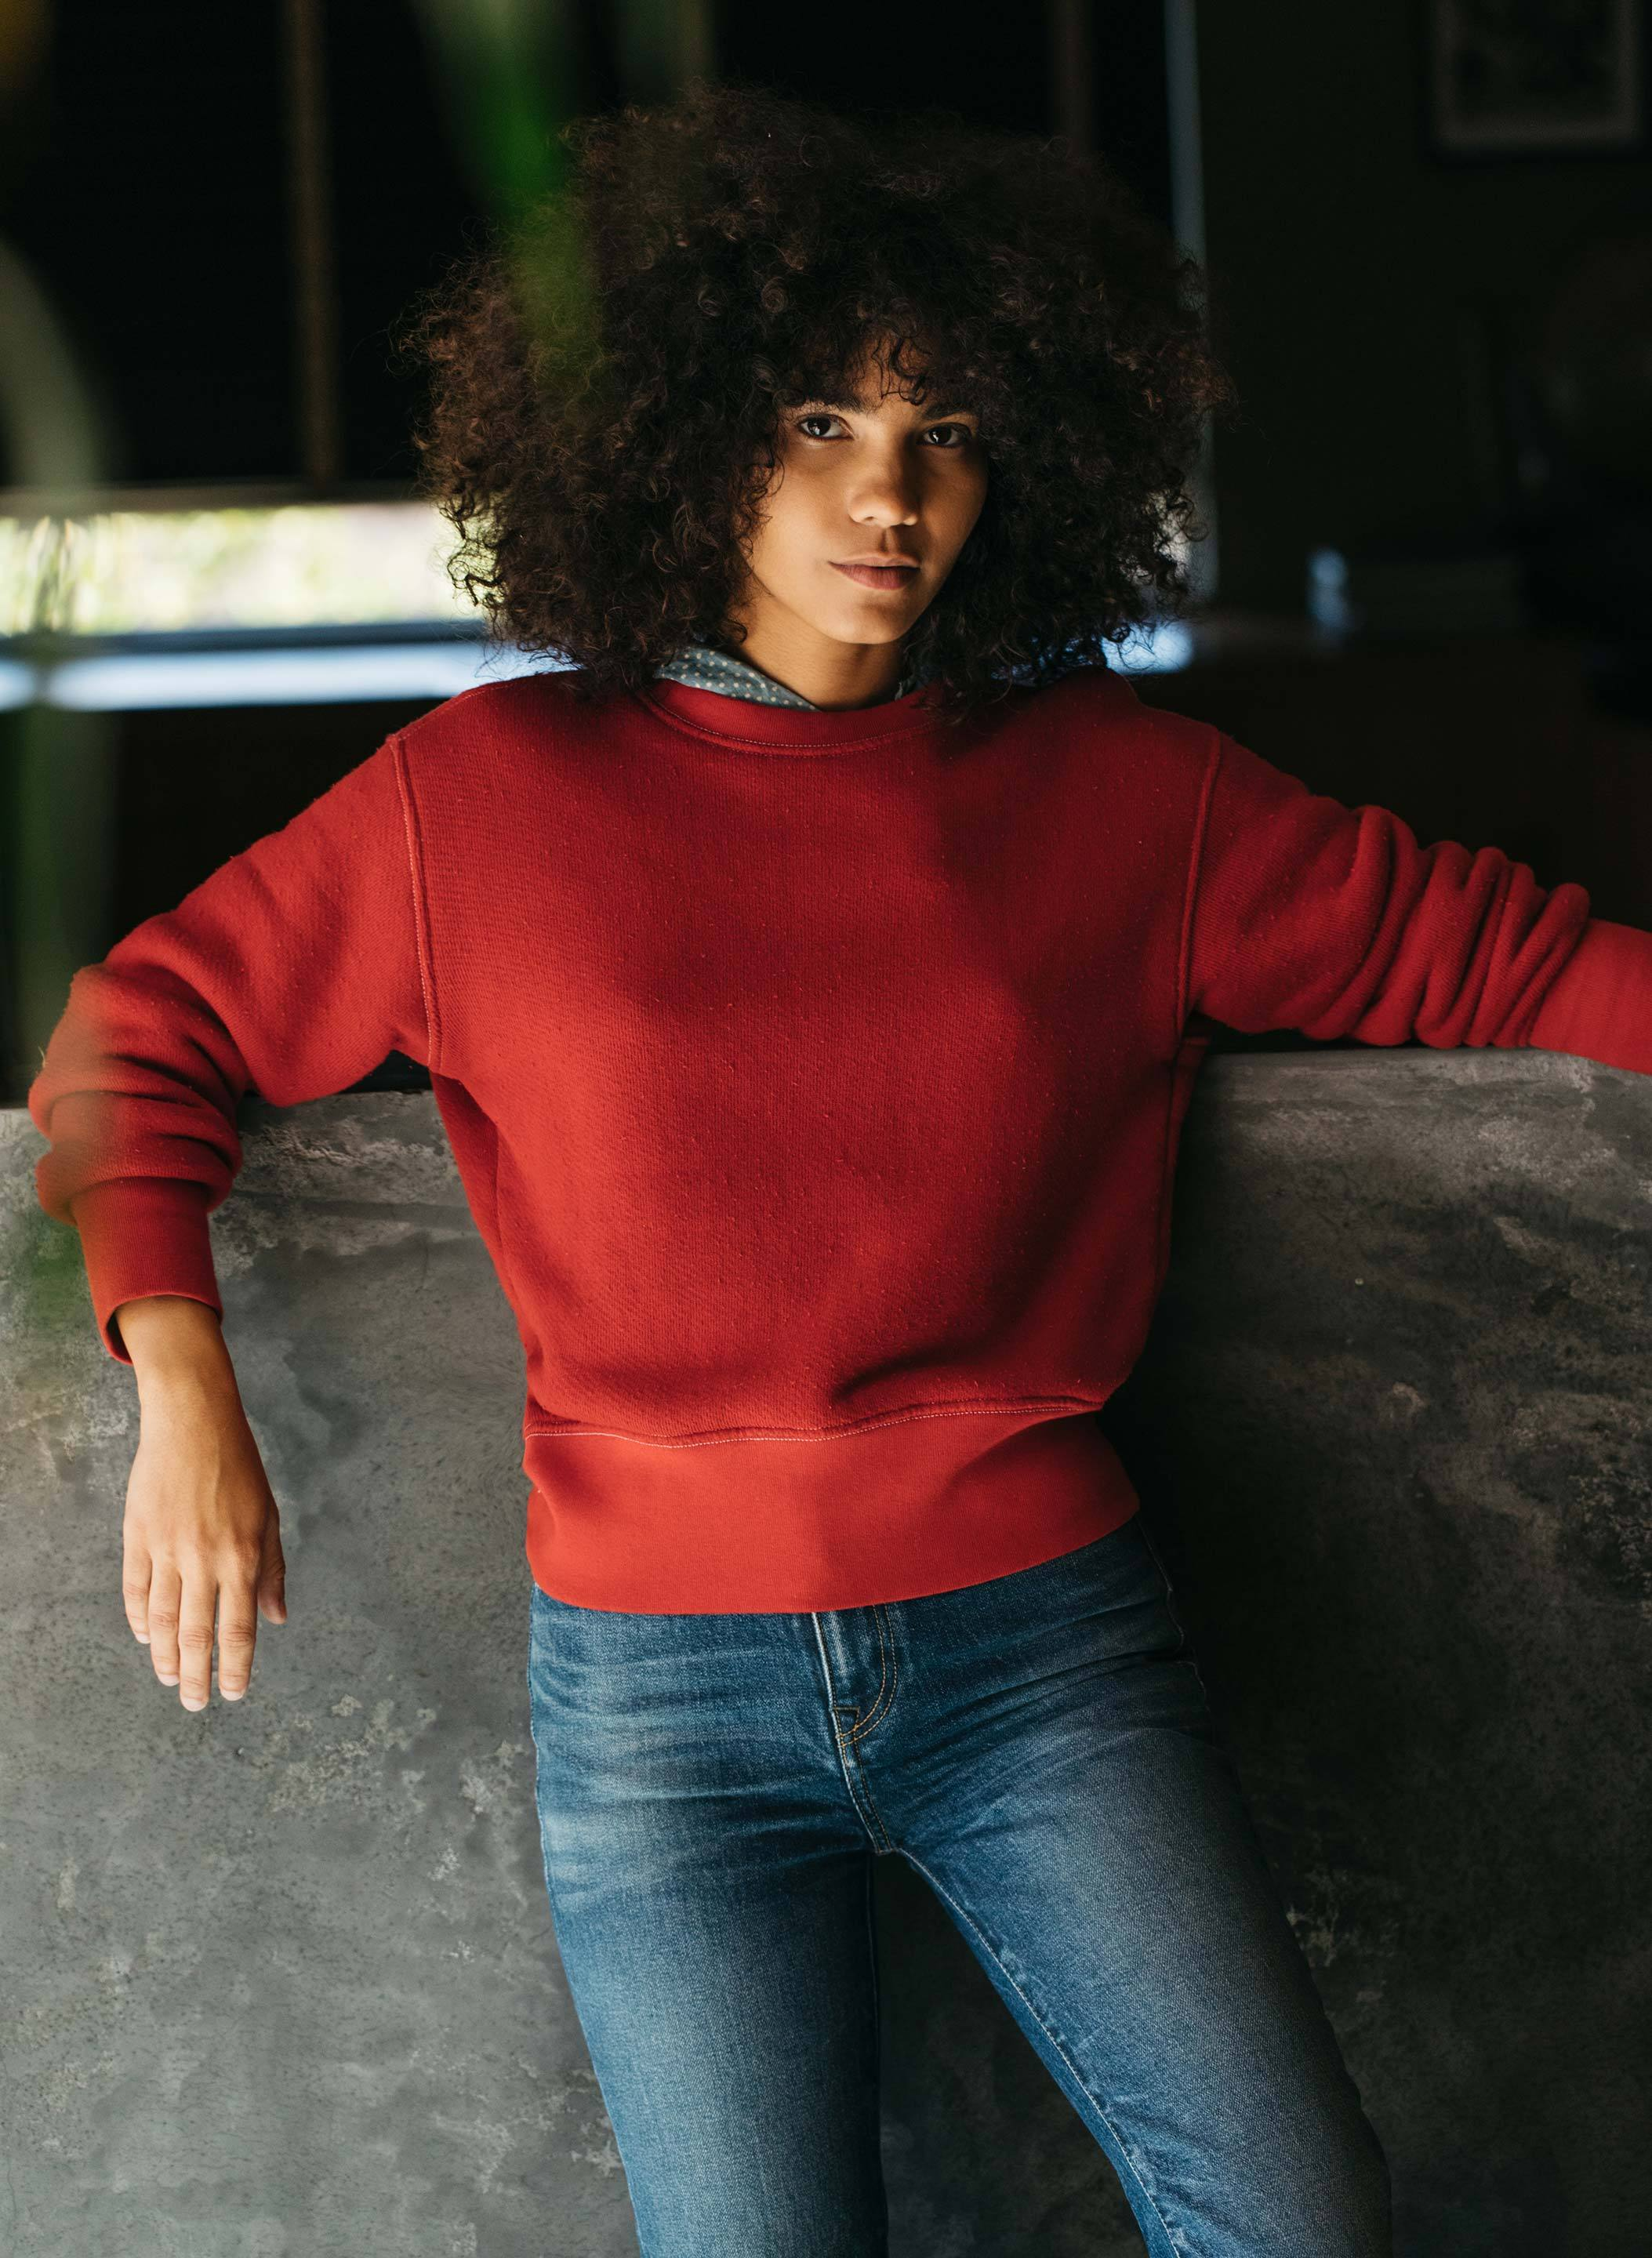 imogene + willie - lina sweatshirt